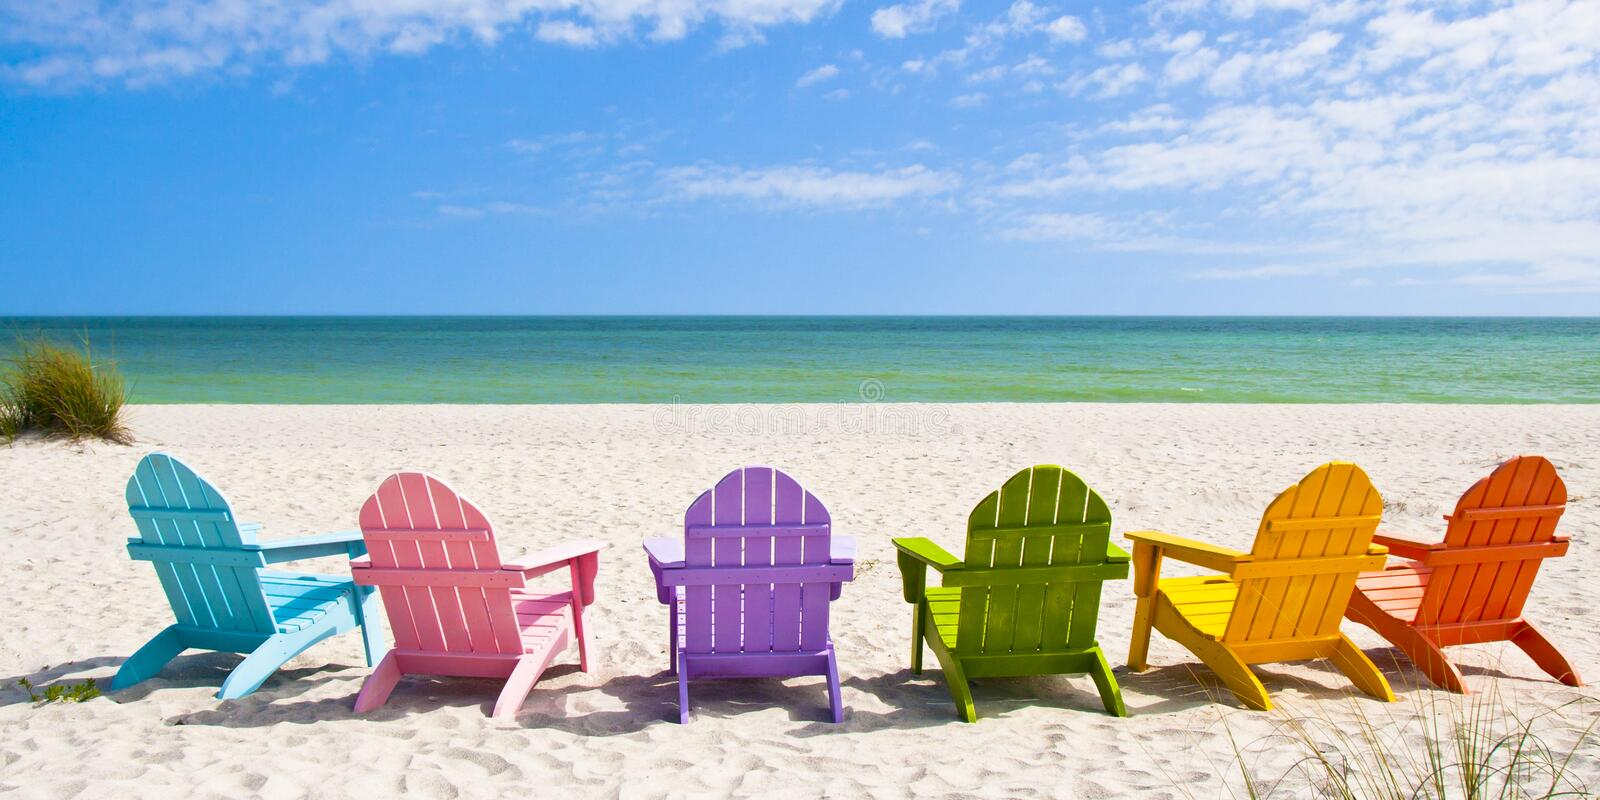 Adirondack Beach Chairs. On a Sun Beach in front of a Holiday Vacation Travel house